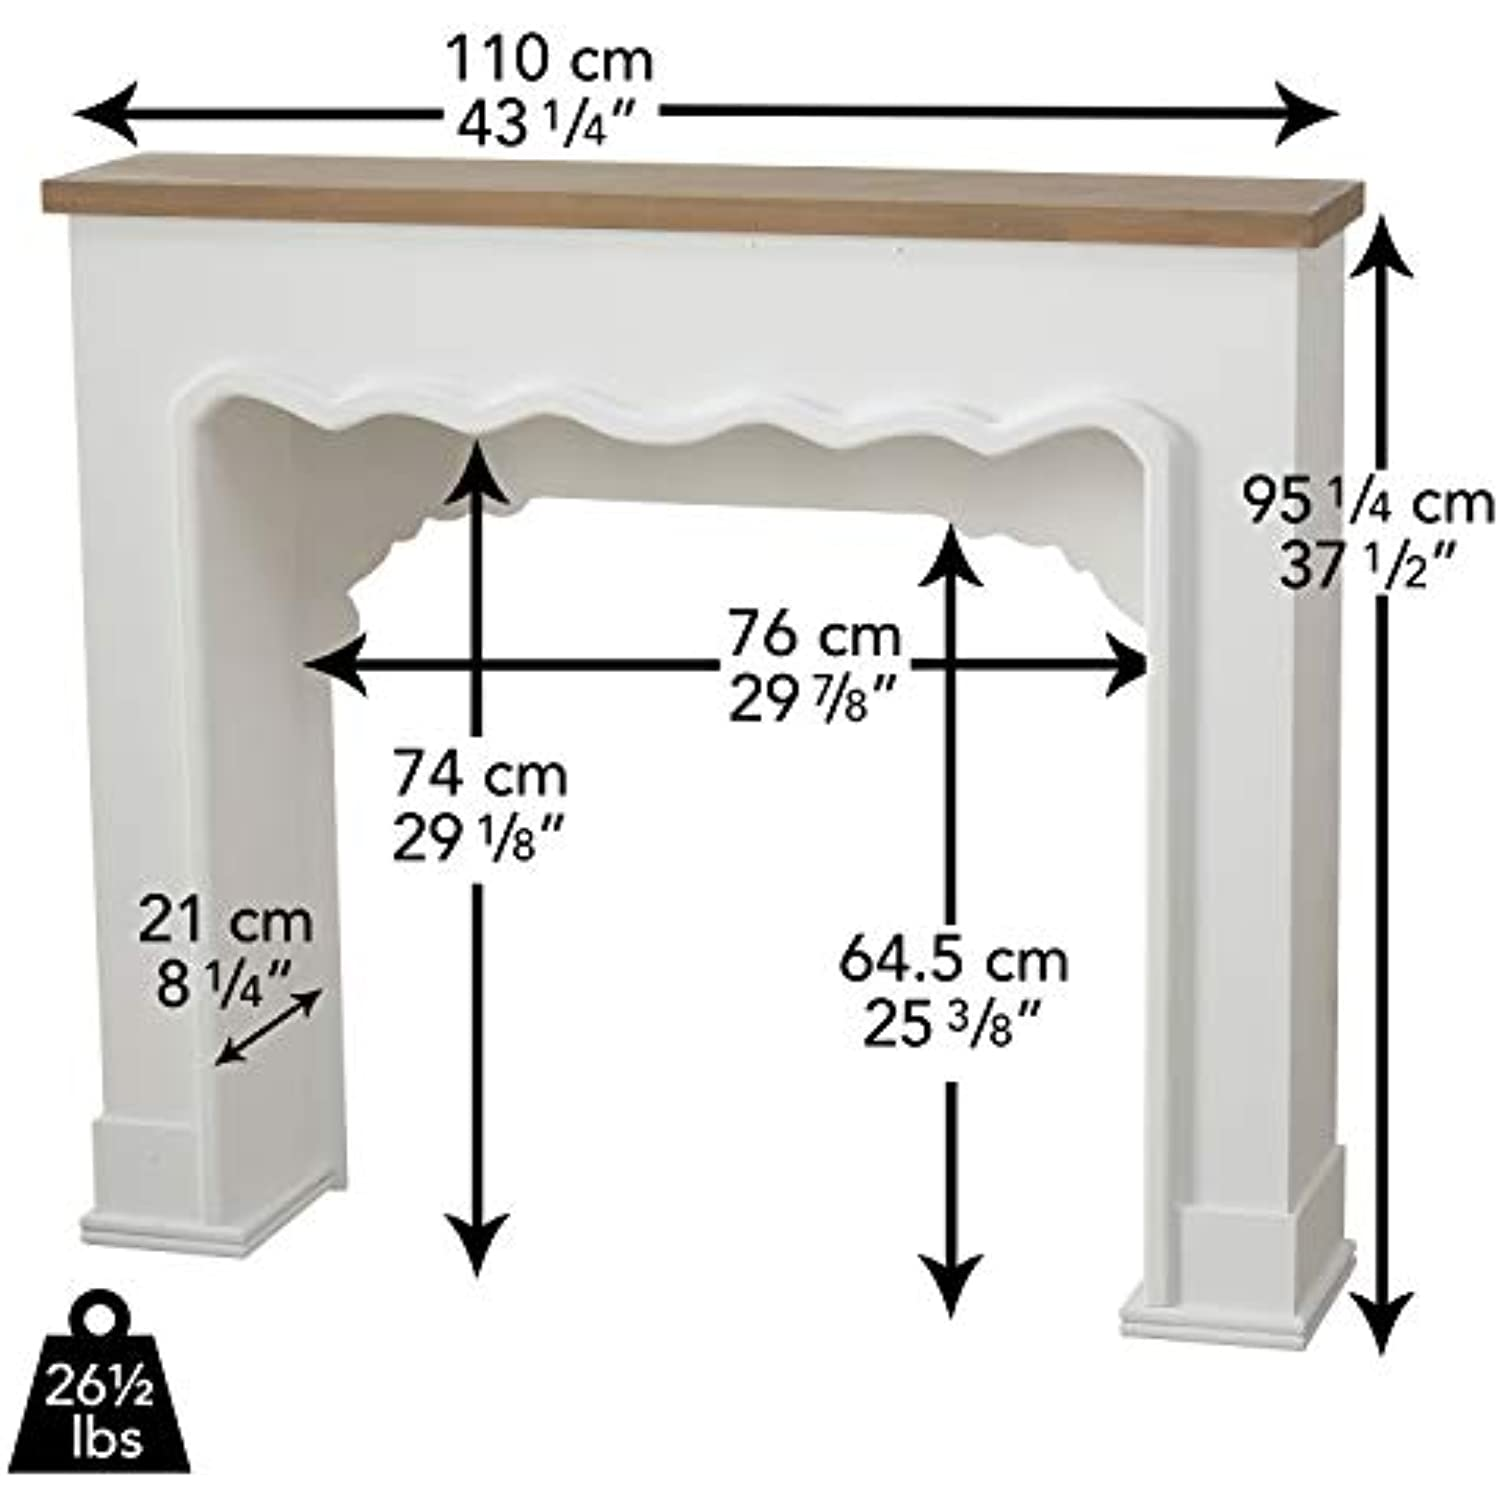 Comfy Cottage Faux Fire Mantle , Rustic Nut Brown Plank-Lintel, Scallop Edged Surround Details, White Painted, Natural and MDF Wood, Over 3 Ft Long (43 1/4 L x 37 1/2 H Inches) Free Standing Unit